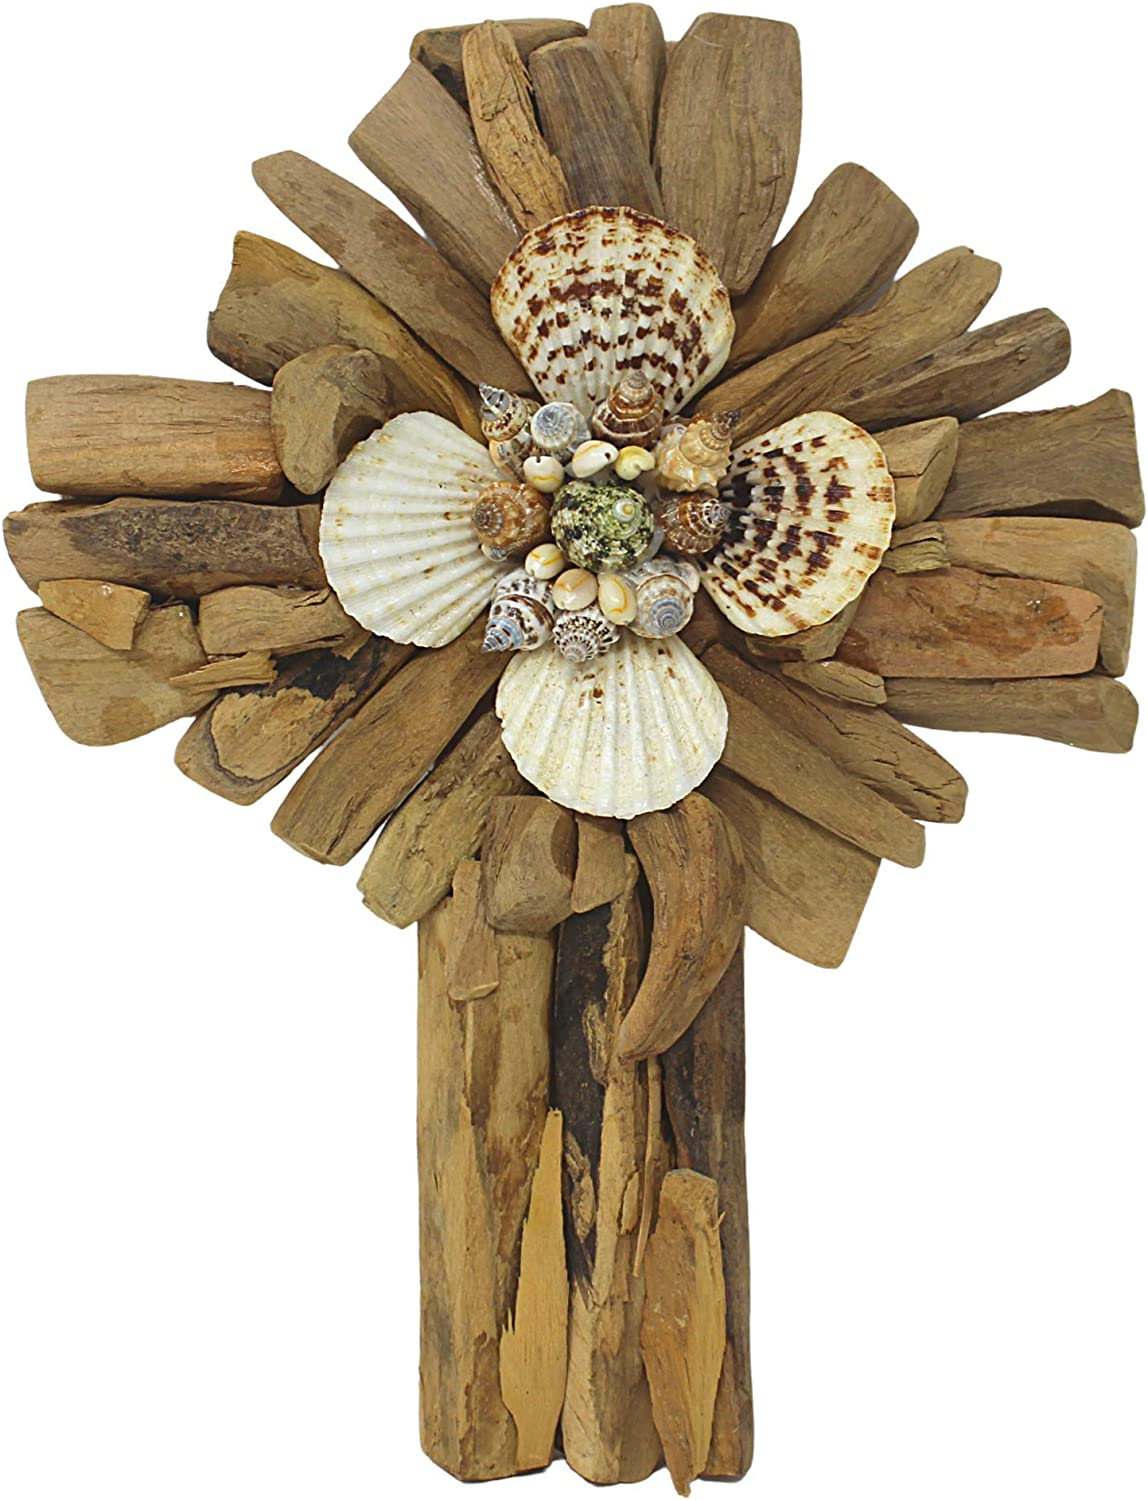 Driftwood Cross with Seashells, Christian Beach House Home Decor for Shelves, Tables, 14 Inches